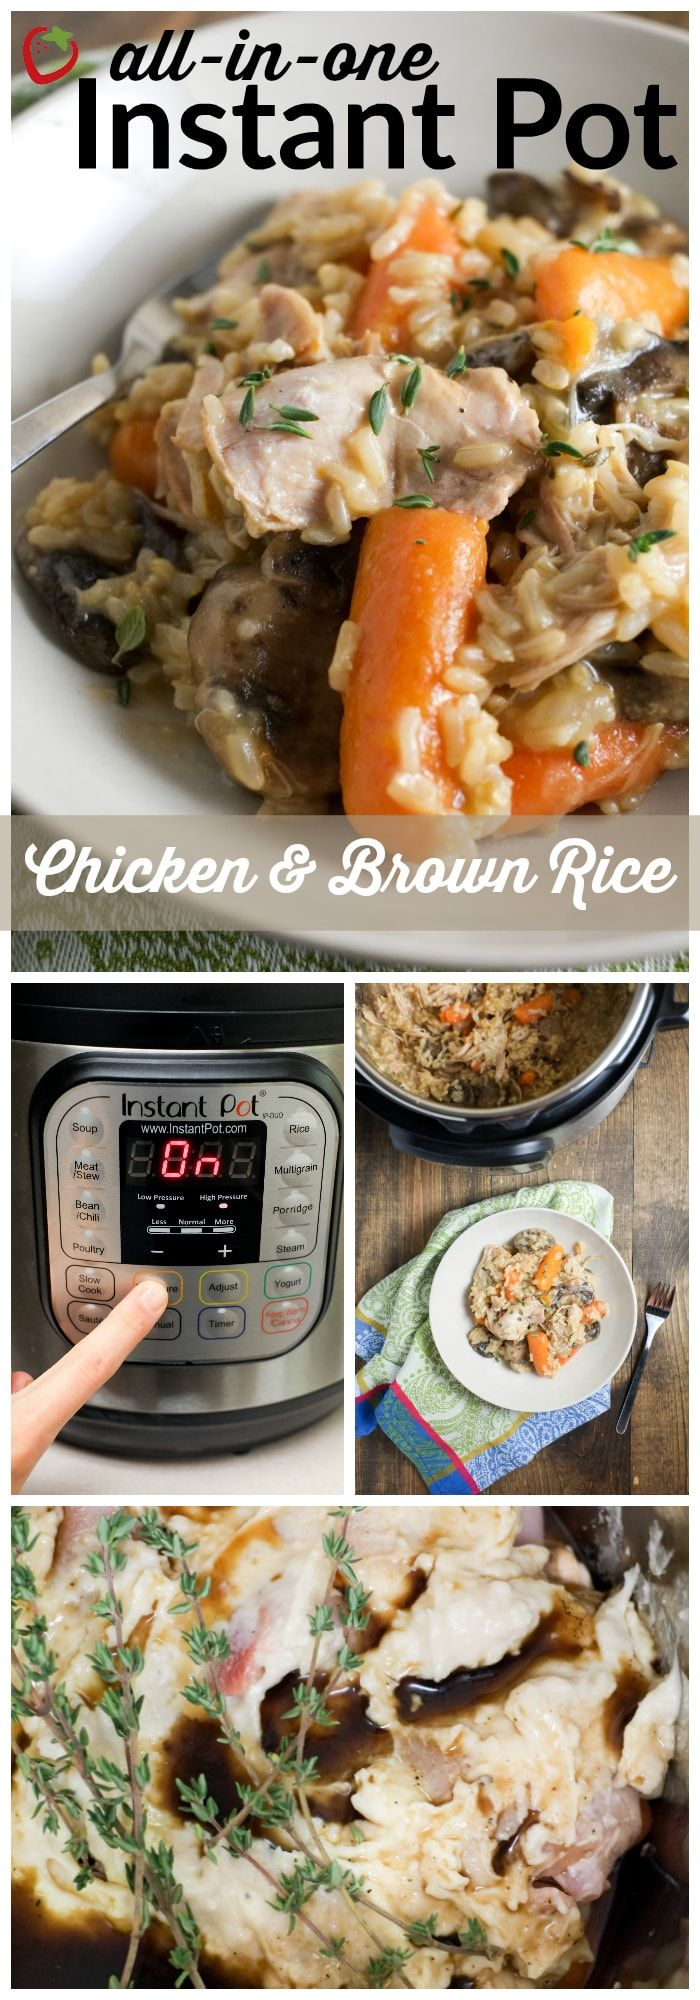 25 delicious instant dinners for easy weekday meals   – Instant Pot